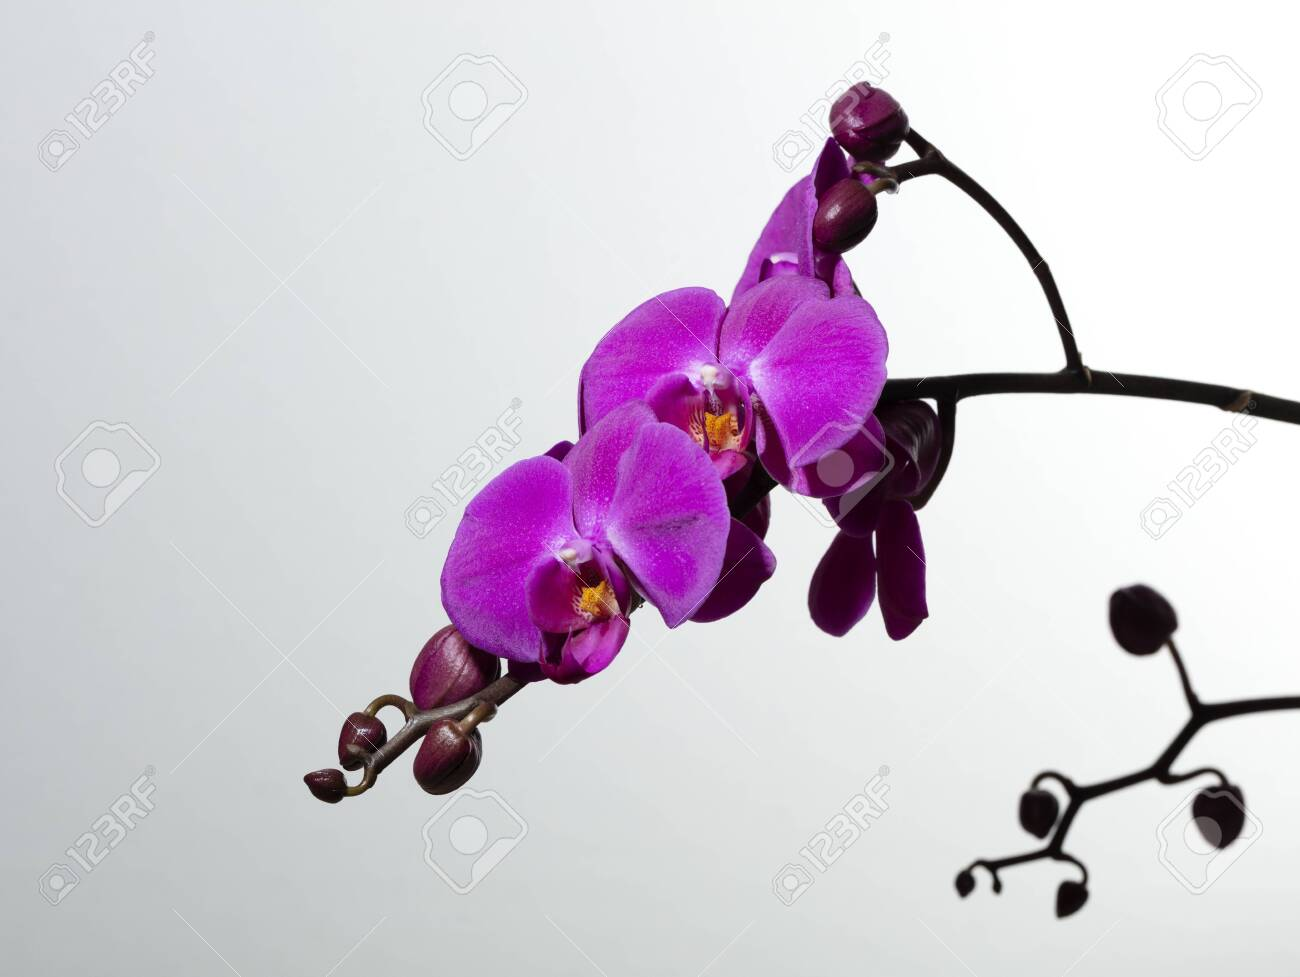 branch of purple orchids and buds on white background, free space for text - 123523718